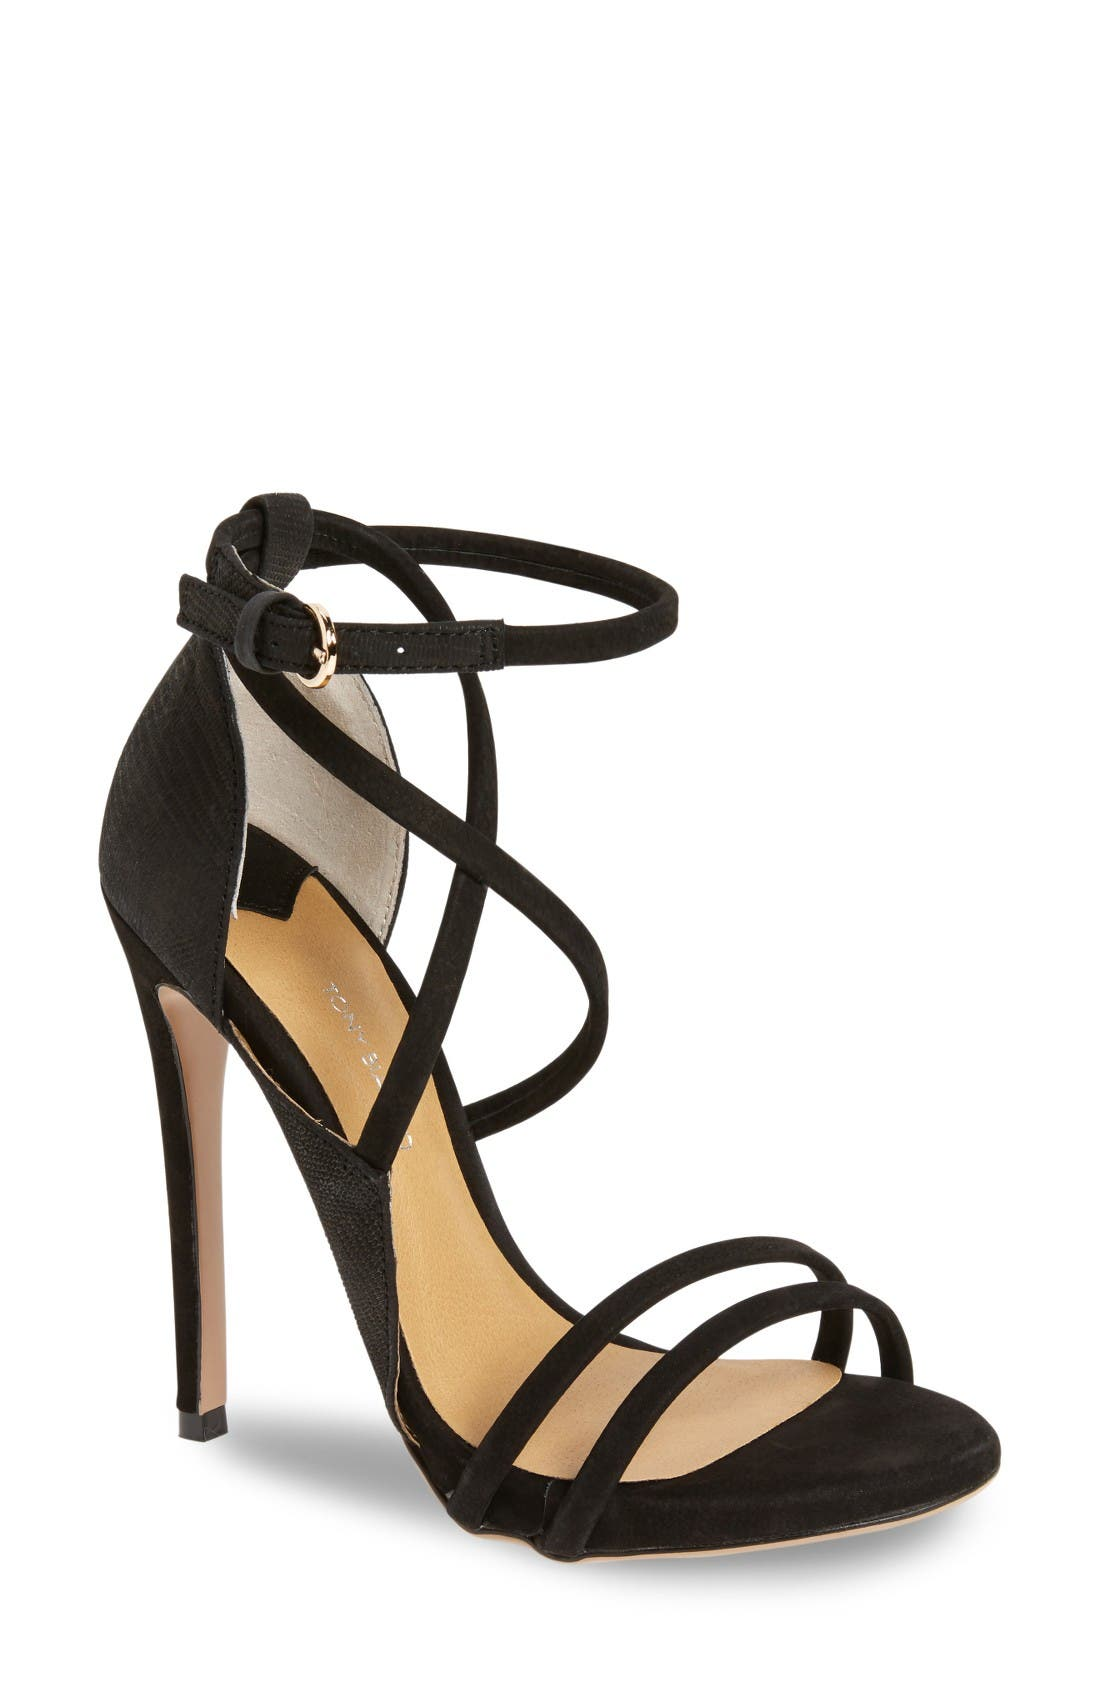 Alita Strappy Sandal,                         Main,                         color, Black Chicago/ Black Berlin